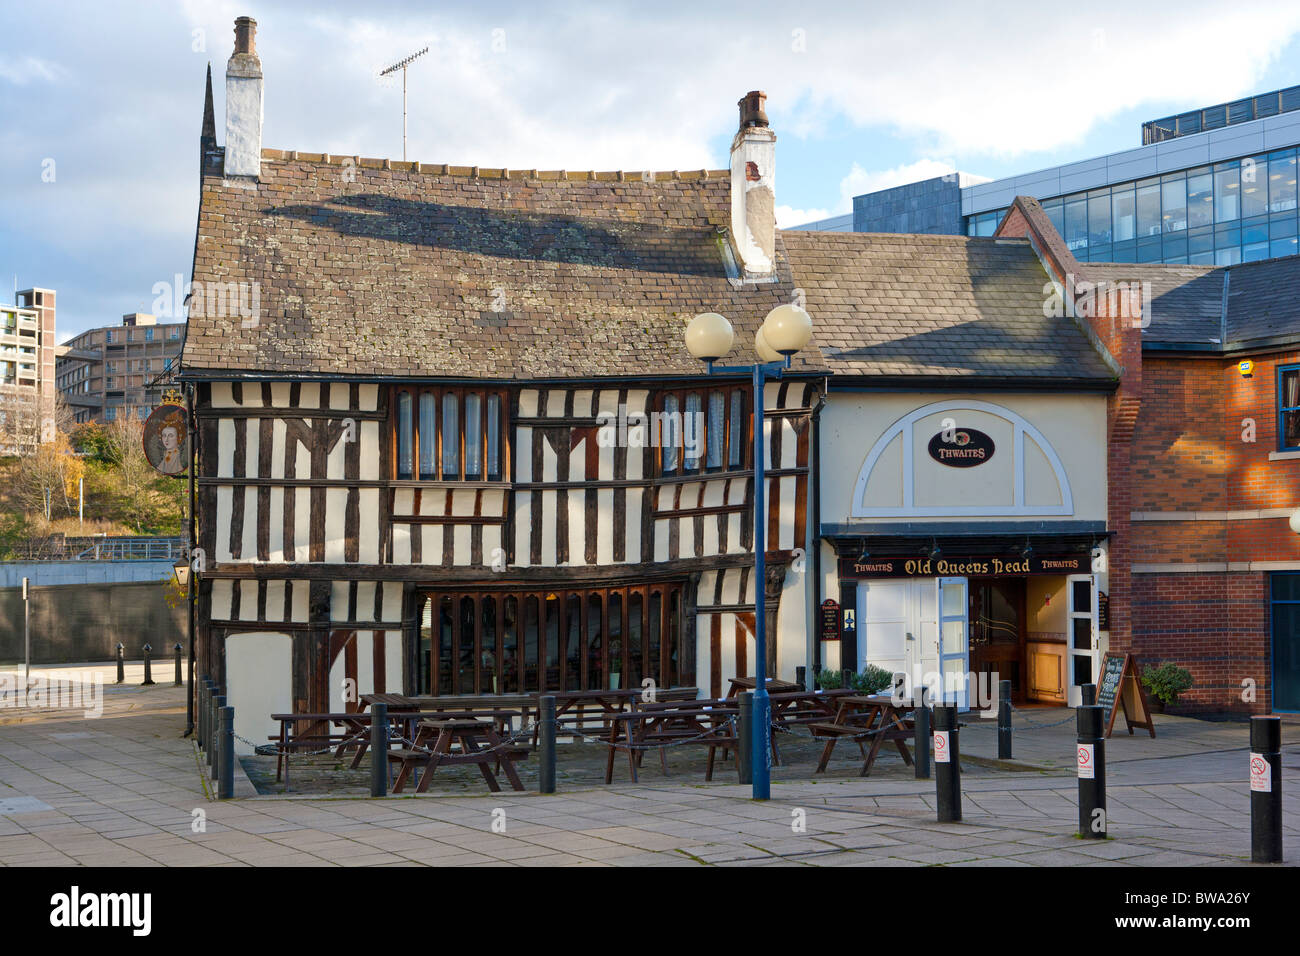 Old Queen's Head, Sheffield - Stock Image